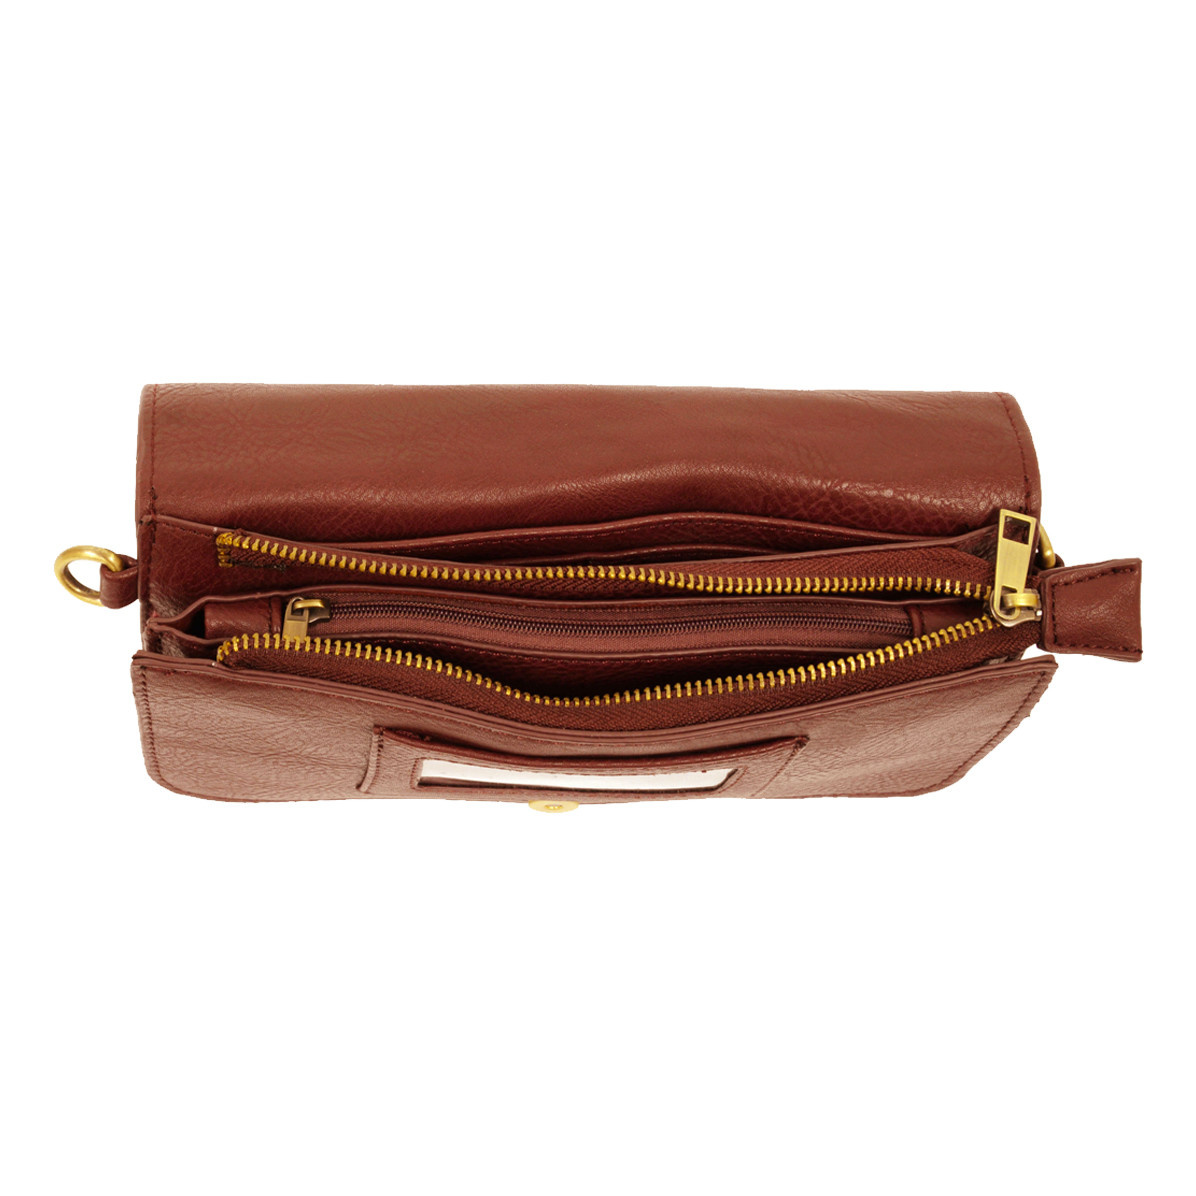 Joy Susan Joy Susan Mia Multi Pocket Crossbody Ruby